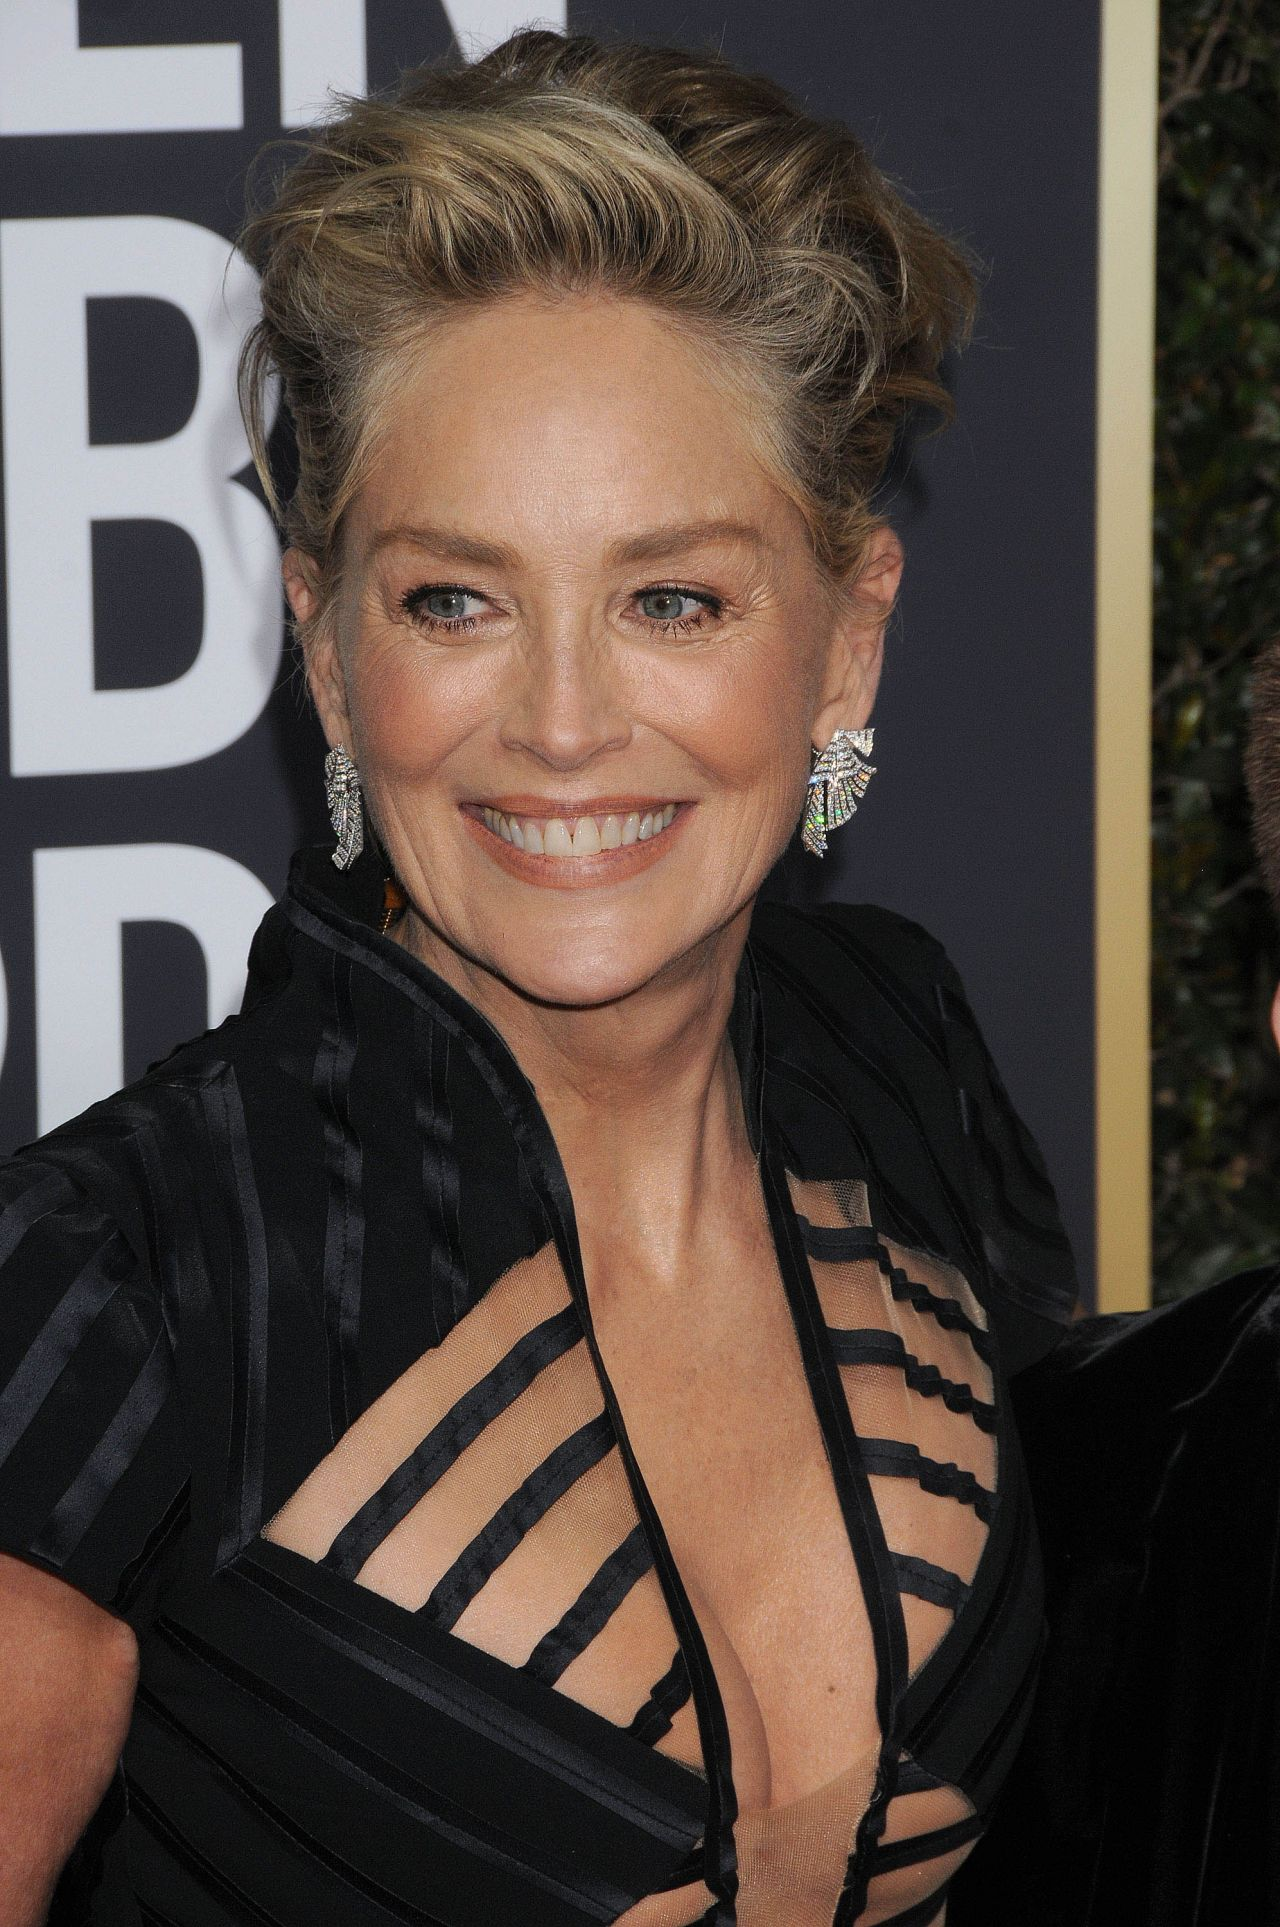 sharon stone golden globe awards 2018. Black Bedroom Furniture Sets. Home Design Ideas